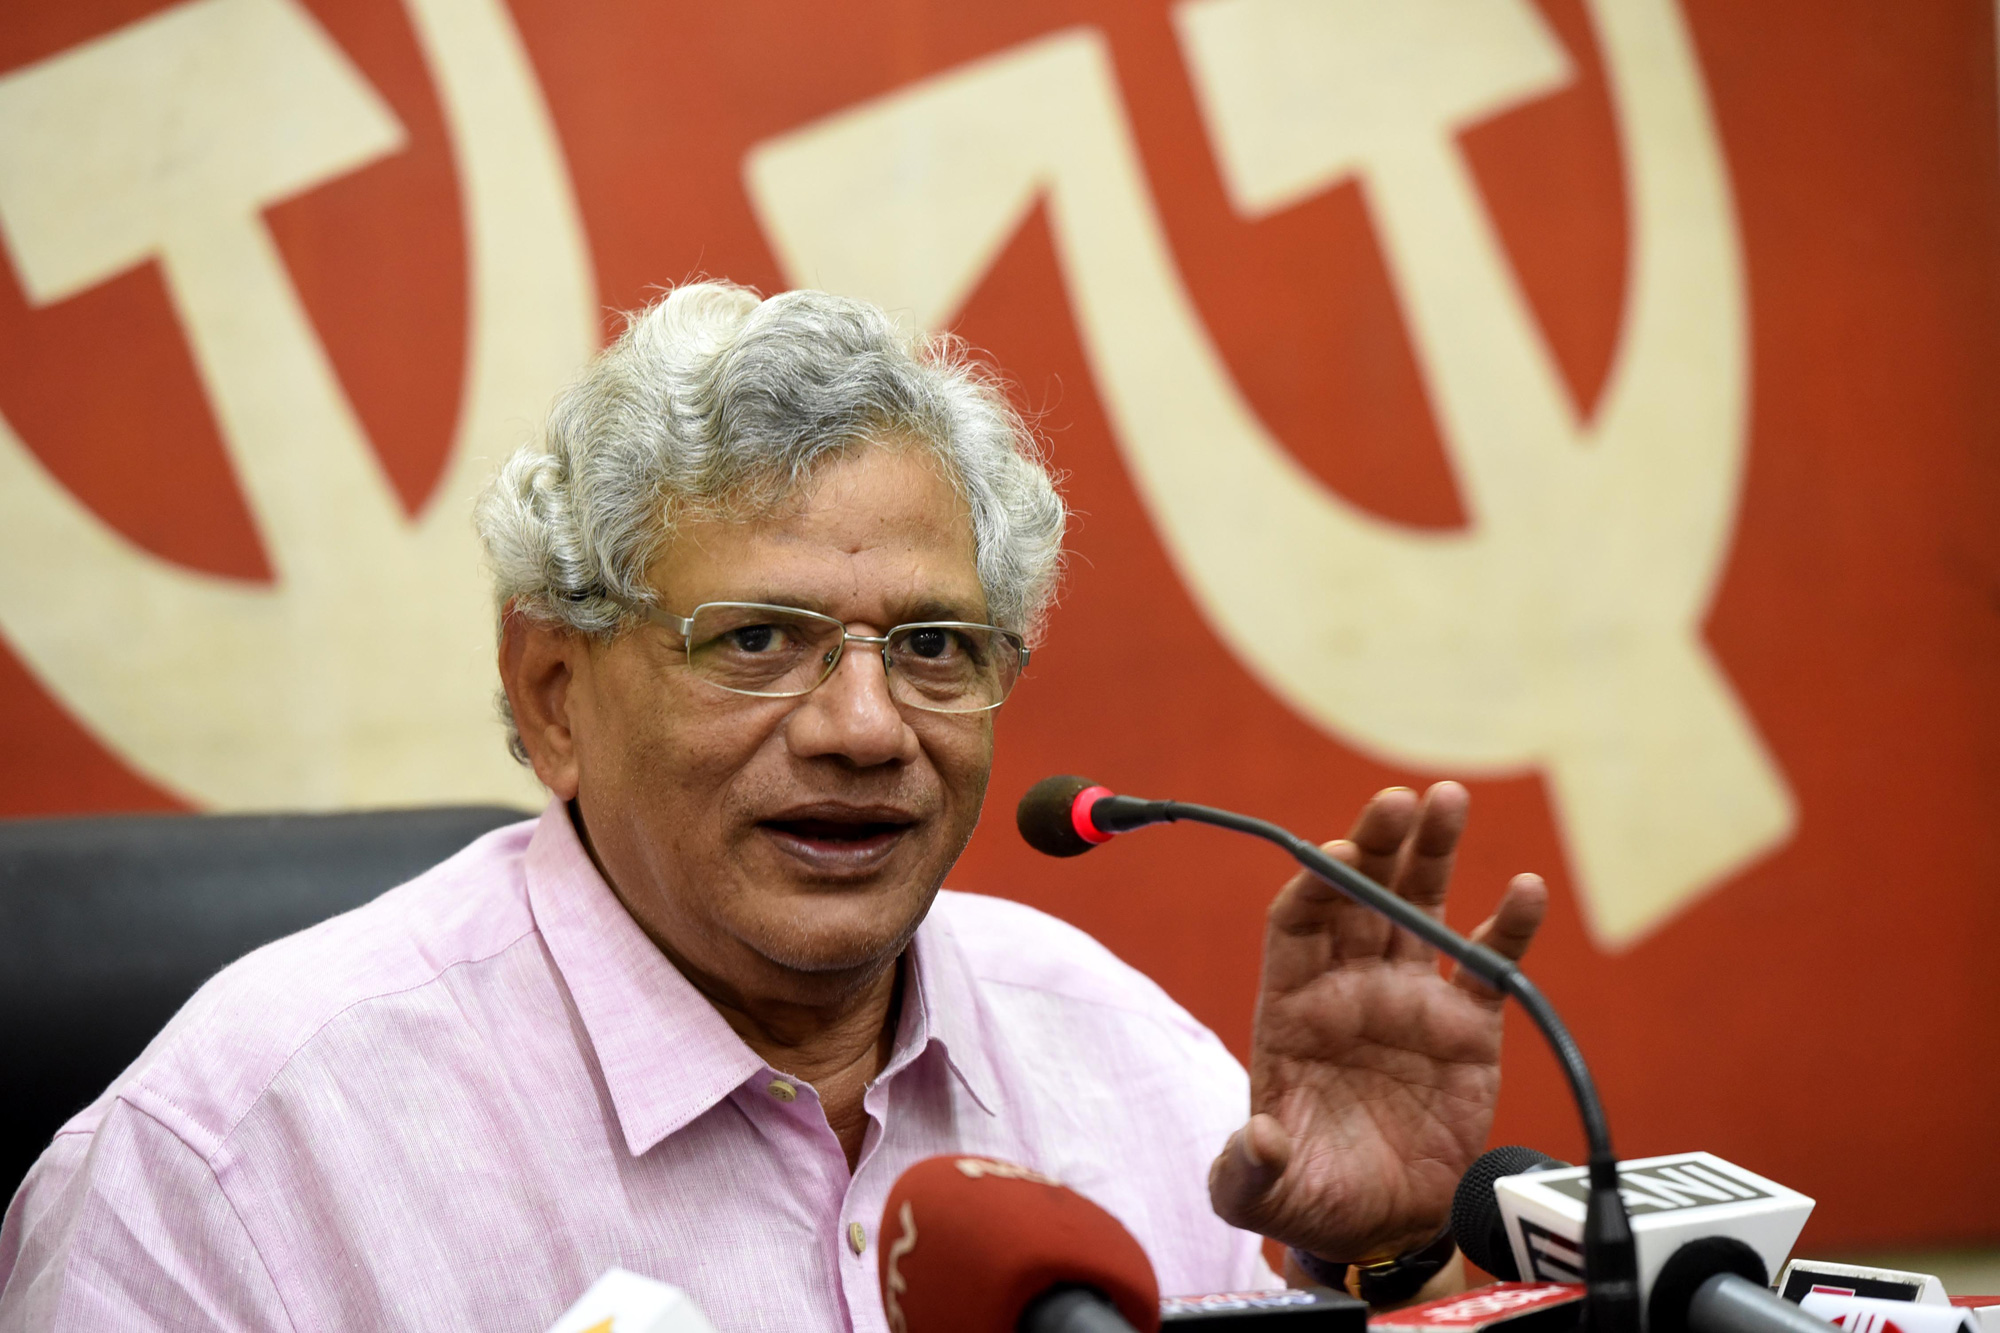 Party general secretary Sitaram Yechury has apparently suggested that Shoranur MLA P.K. Sasi not be given any position in the party immediately at the end of the suspension period.